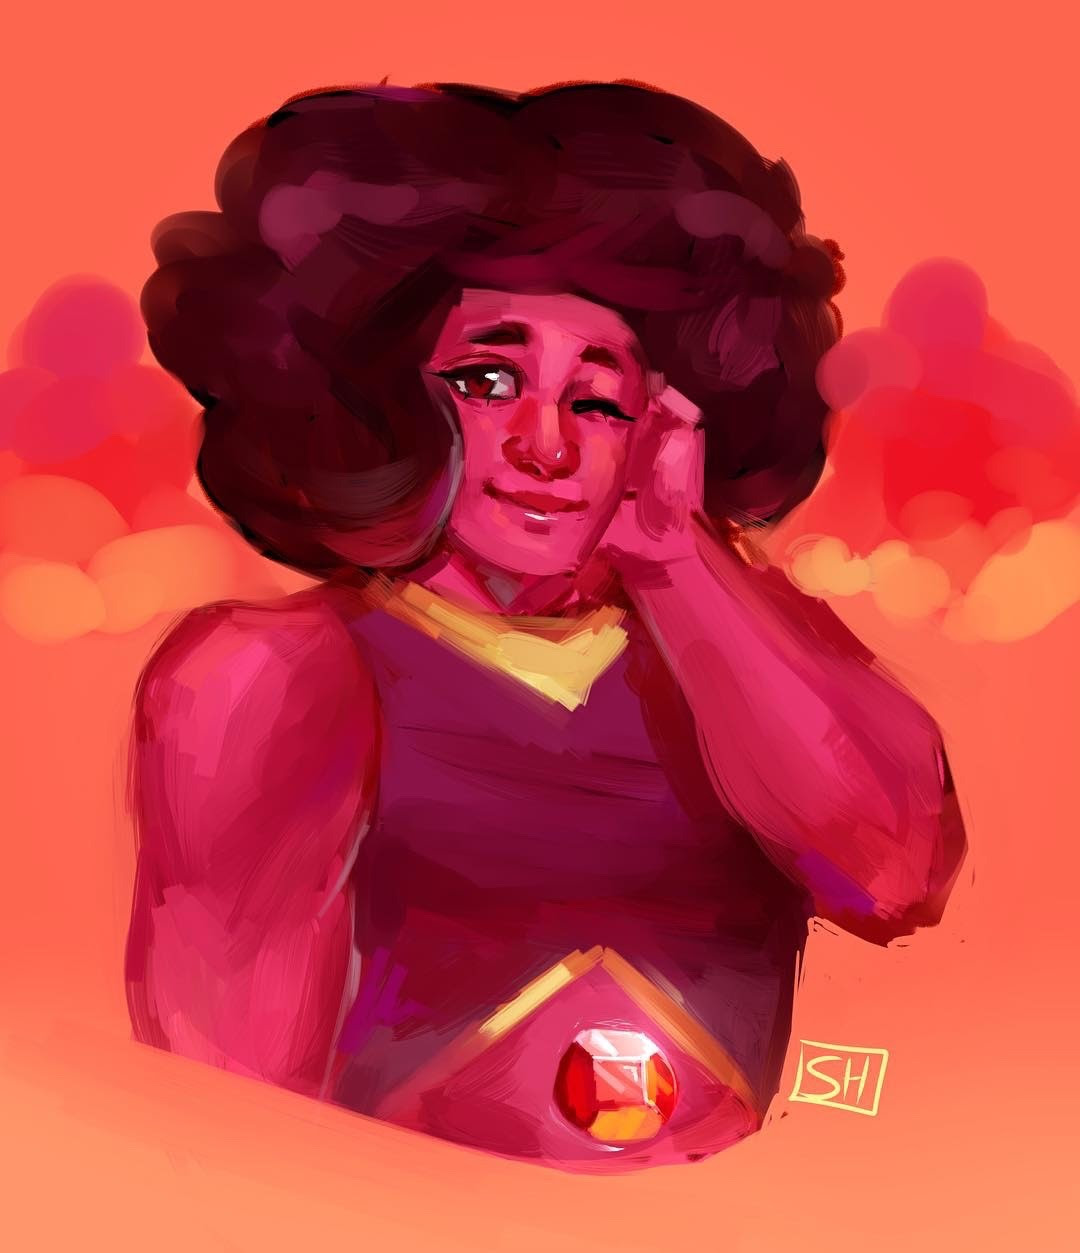 Decided to do a little painting of Navy, she's definitely my favorite ruby!